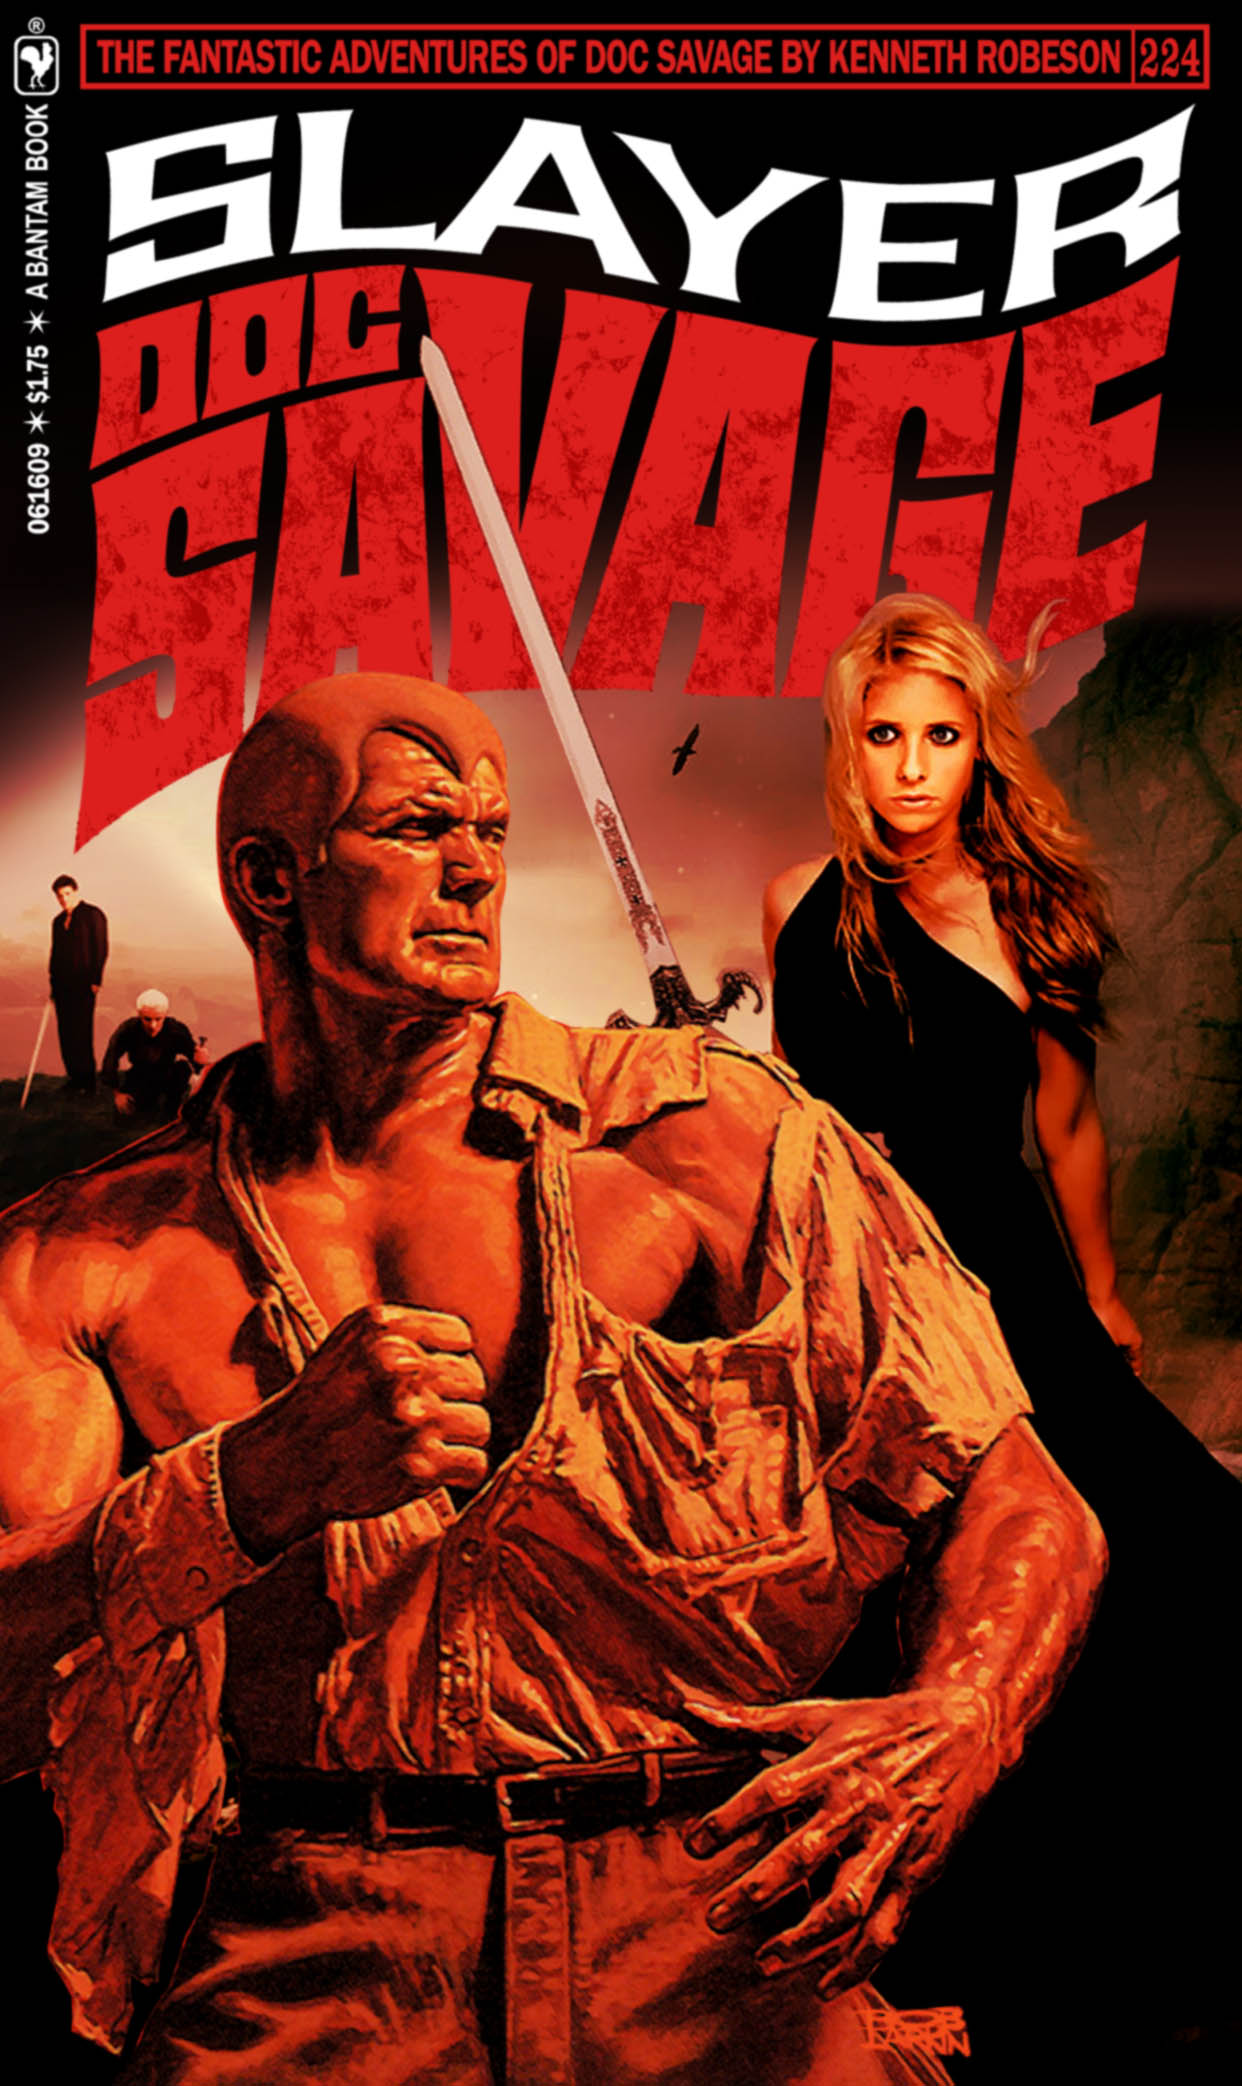 Return to the Doc Savage Fantasy Cover Gallery